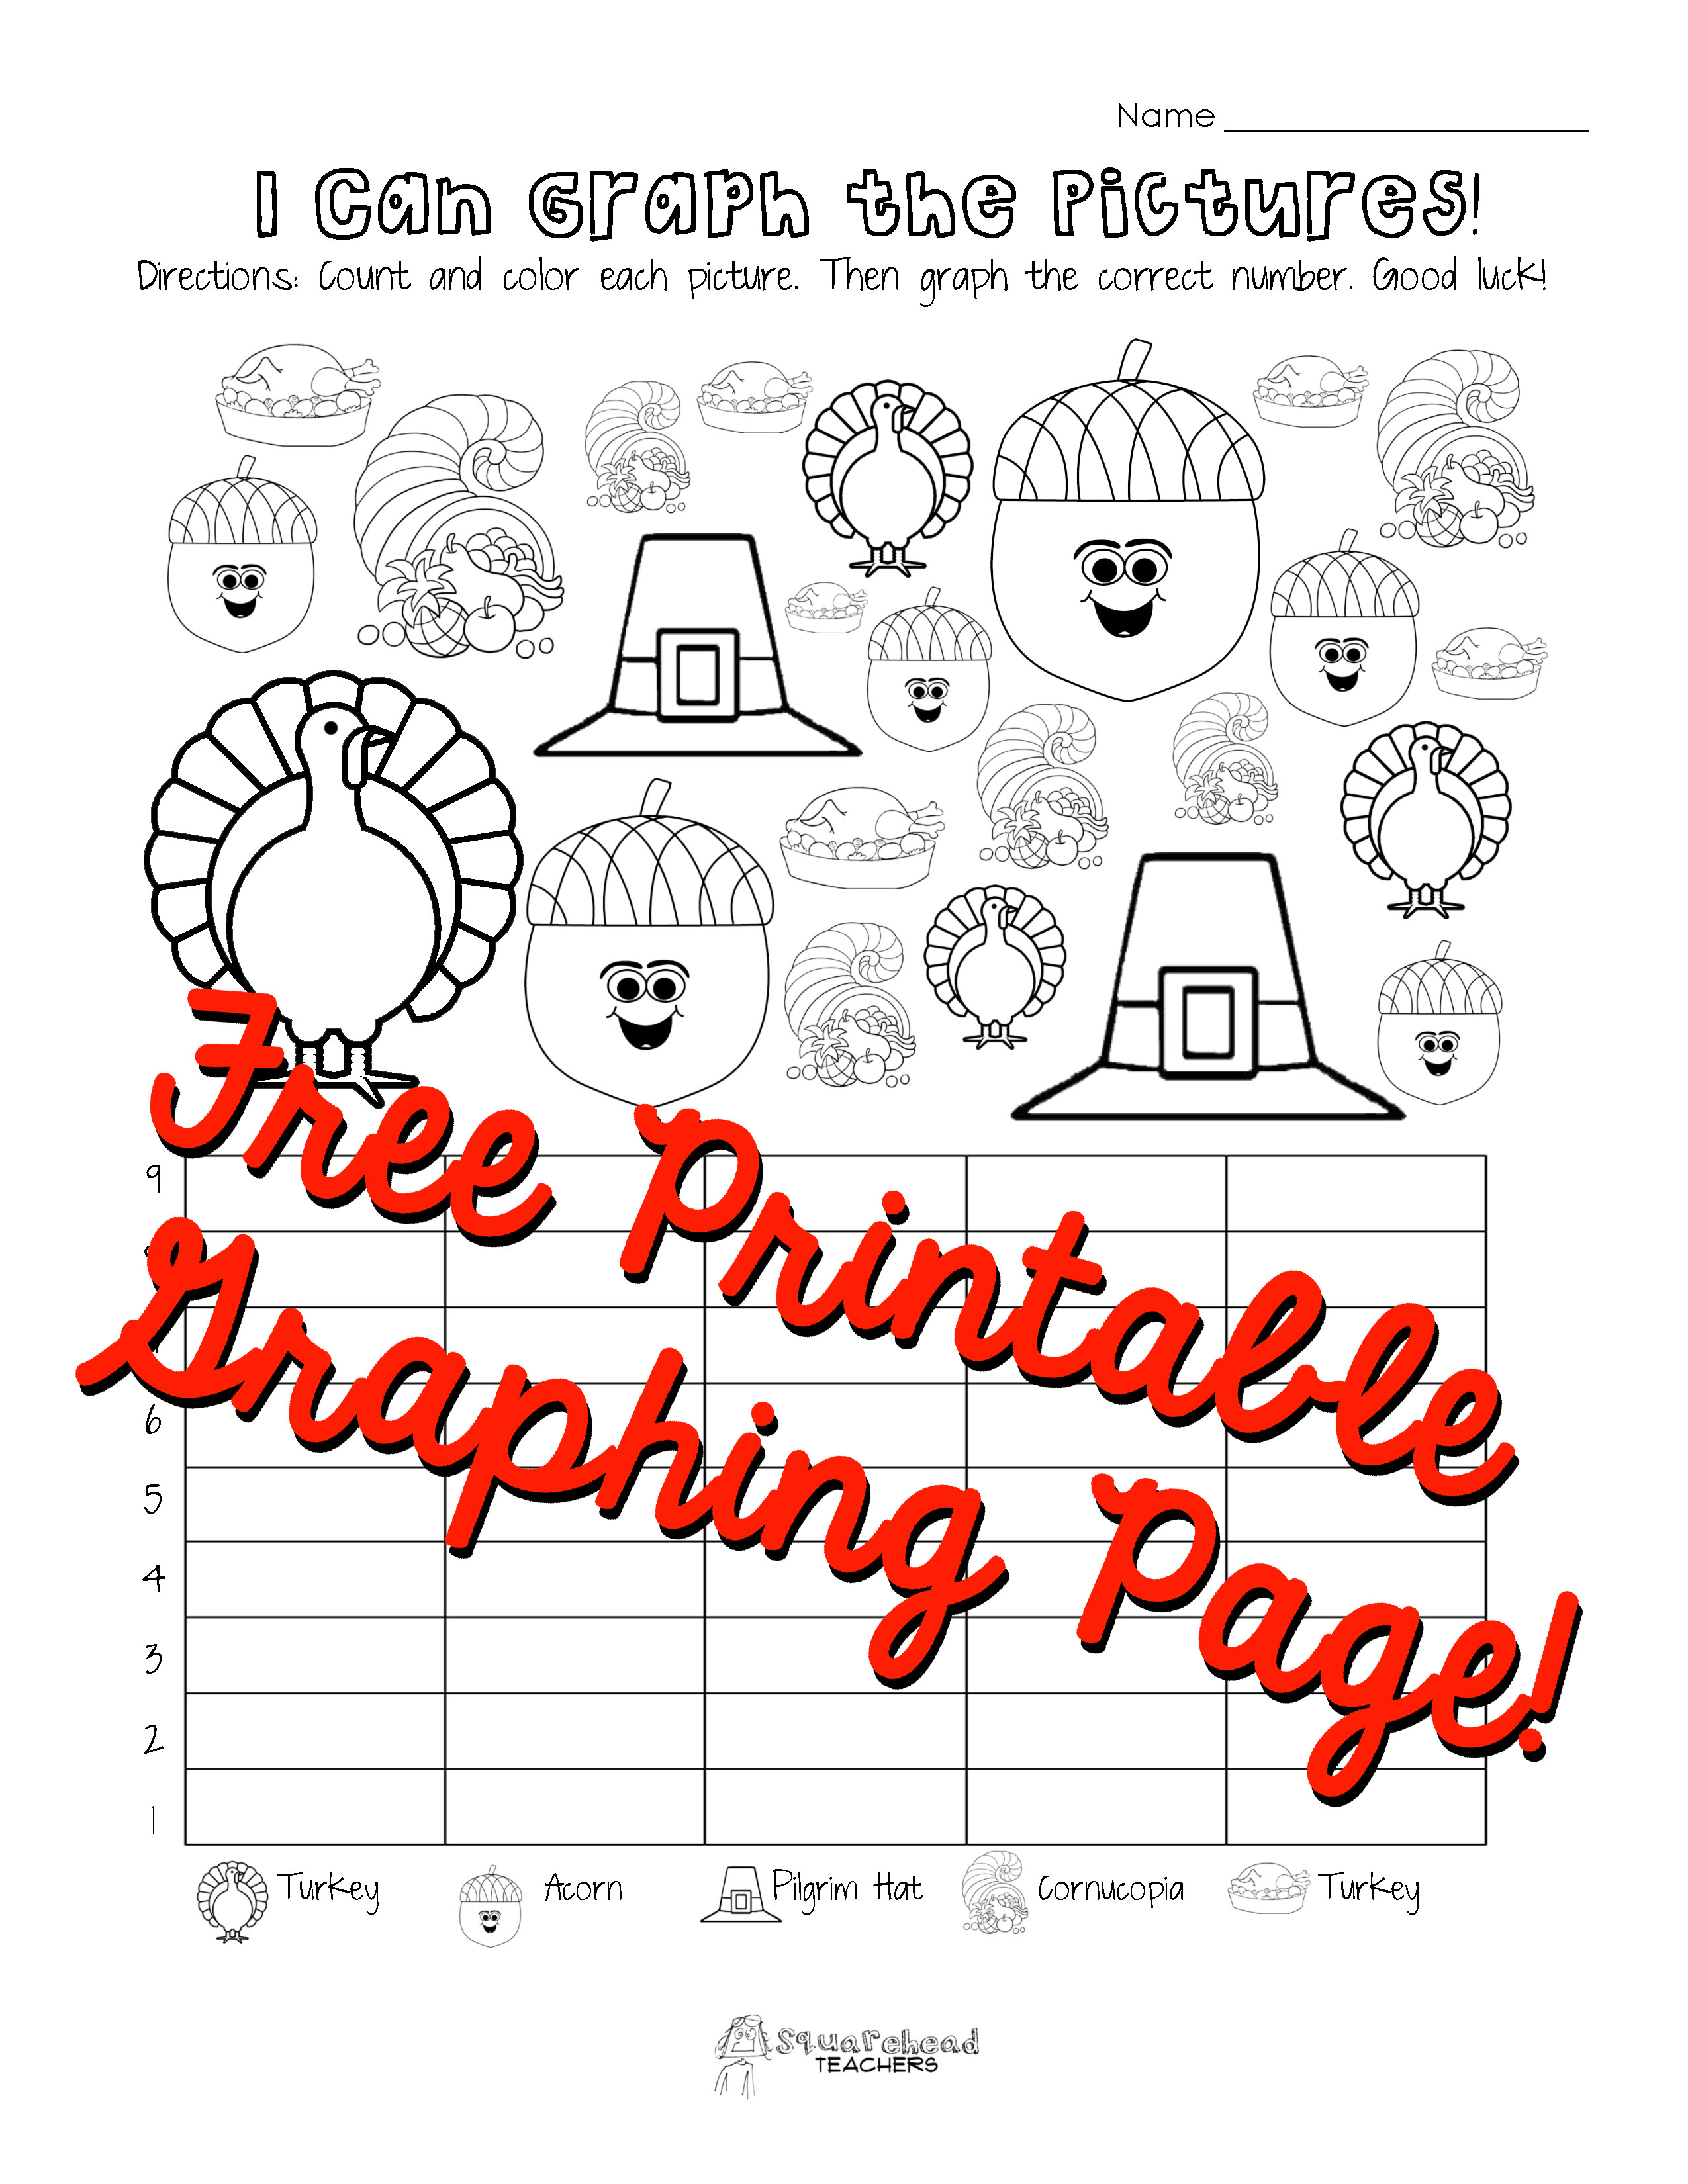 Halloween Activity Worksheets additionally Spot The Difference Worksheets For Kids besides Color By Number Beach Bucket And Shovel moreover Educational Coloring Pages besides Original. on spring math coloring worksheets for 1st graders